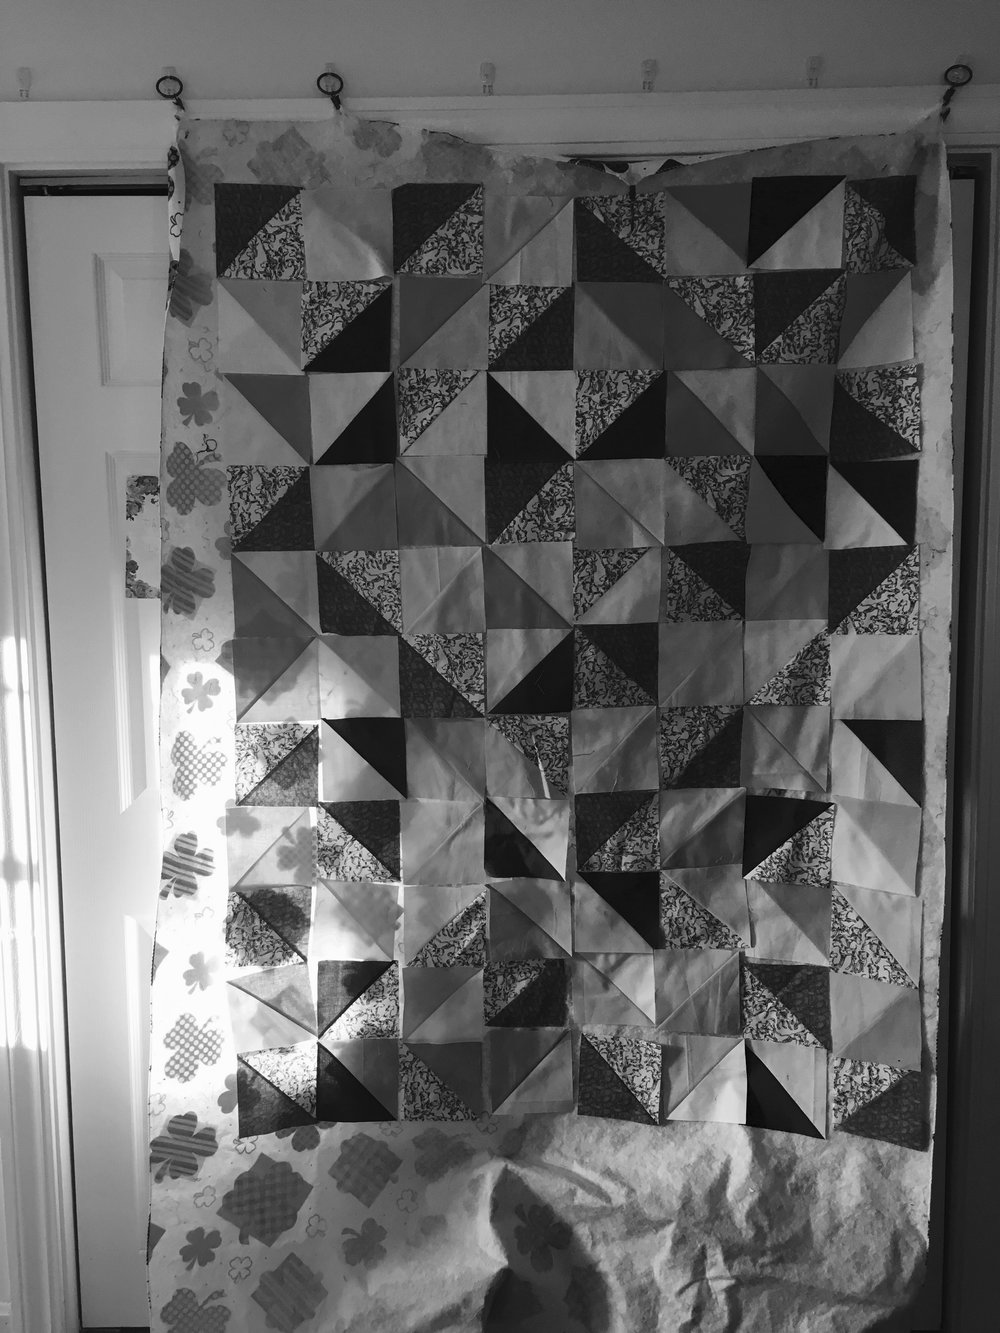 Quilt  Dalmation HST BW 2 Design wall.jpg